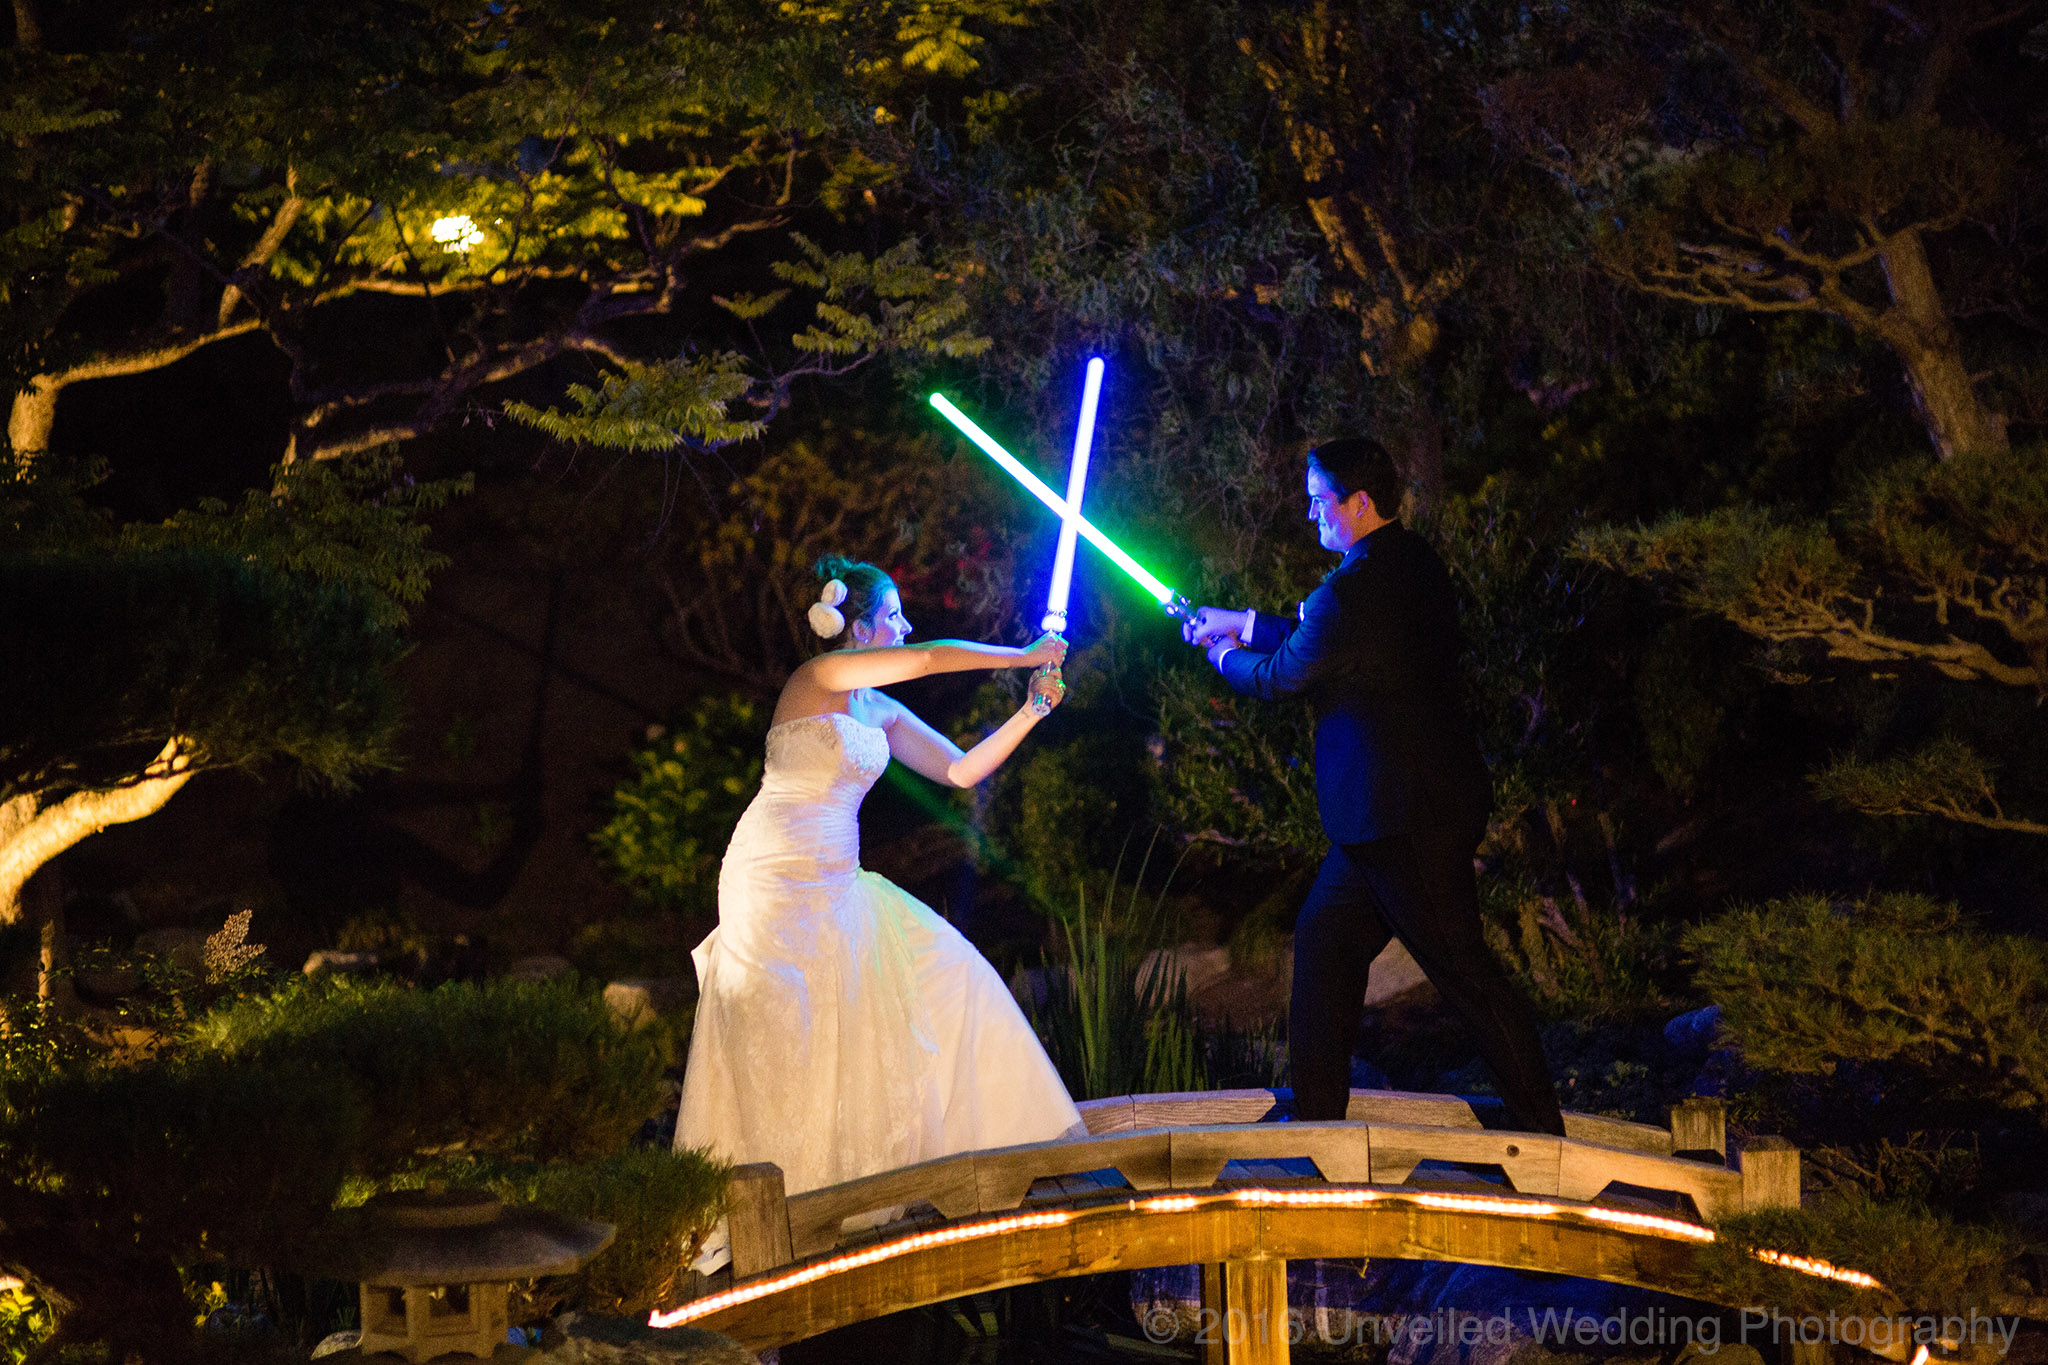 This Couple Had A Star Wars Themed Wedding And The Photos Turned Out Awesome Demilked